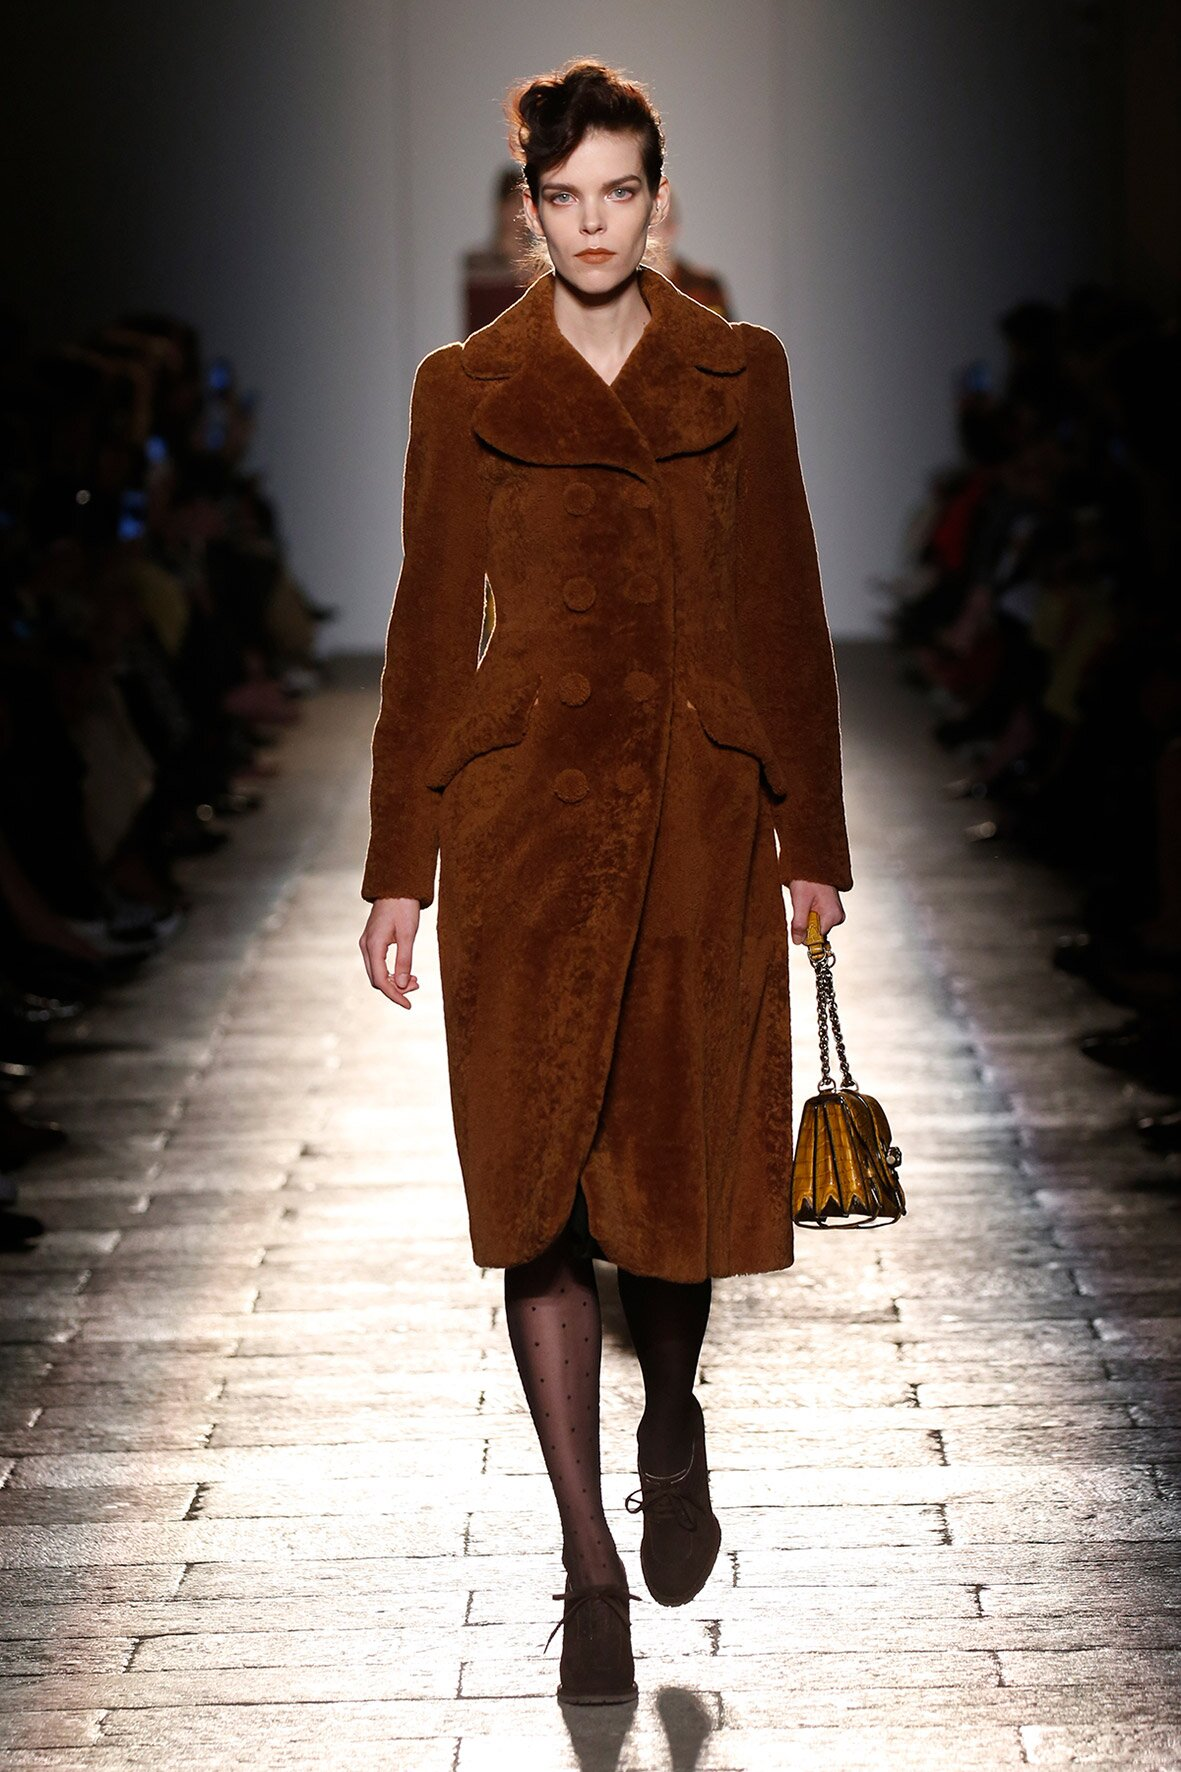 Bottega Veneta Woman Catwalk